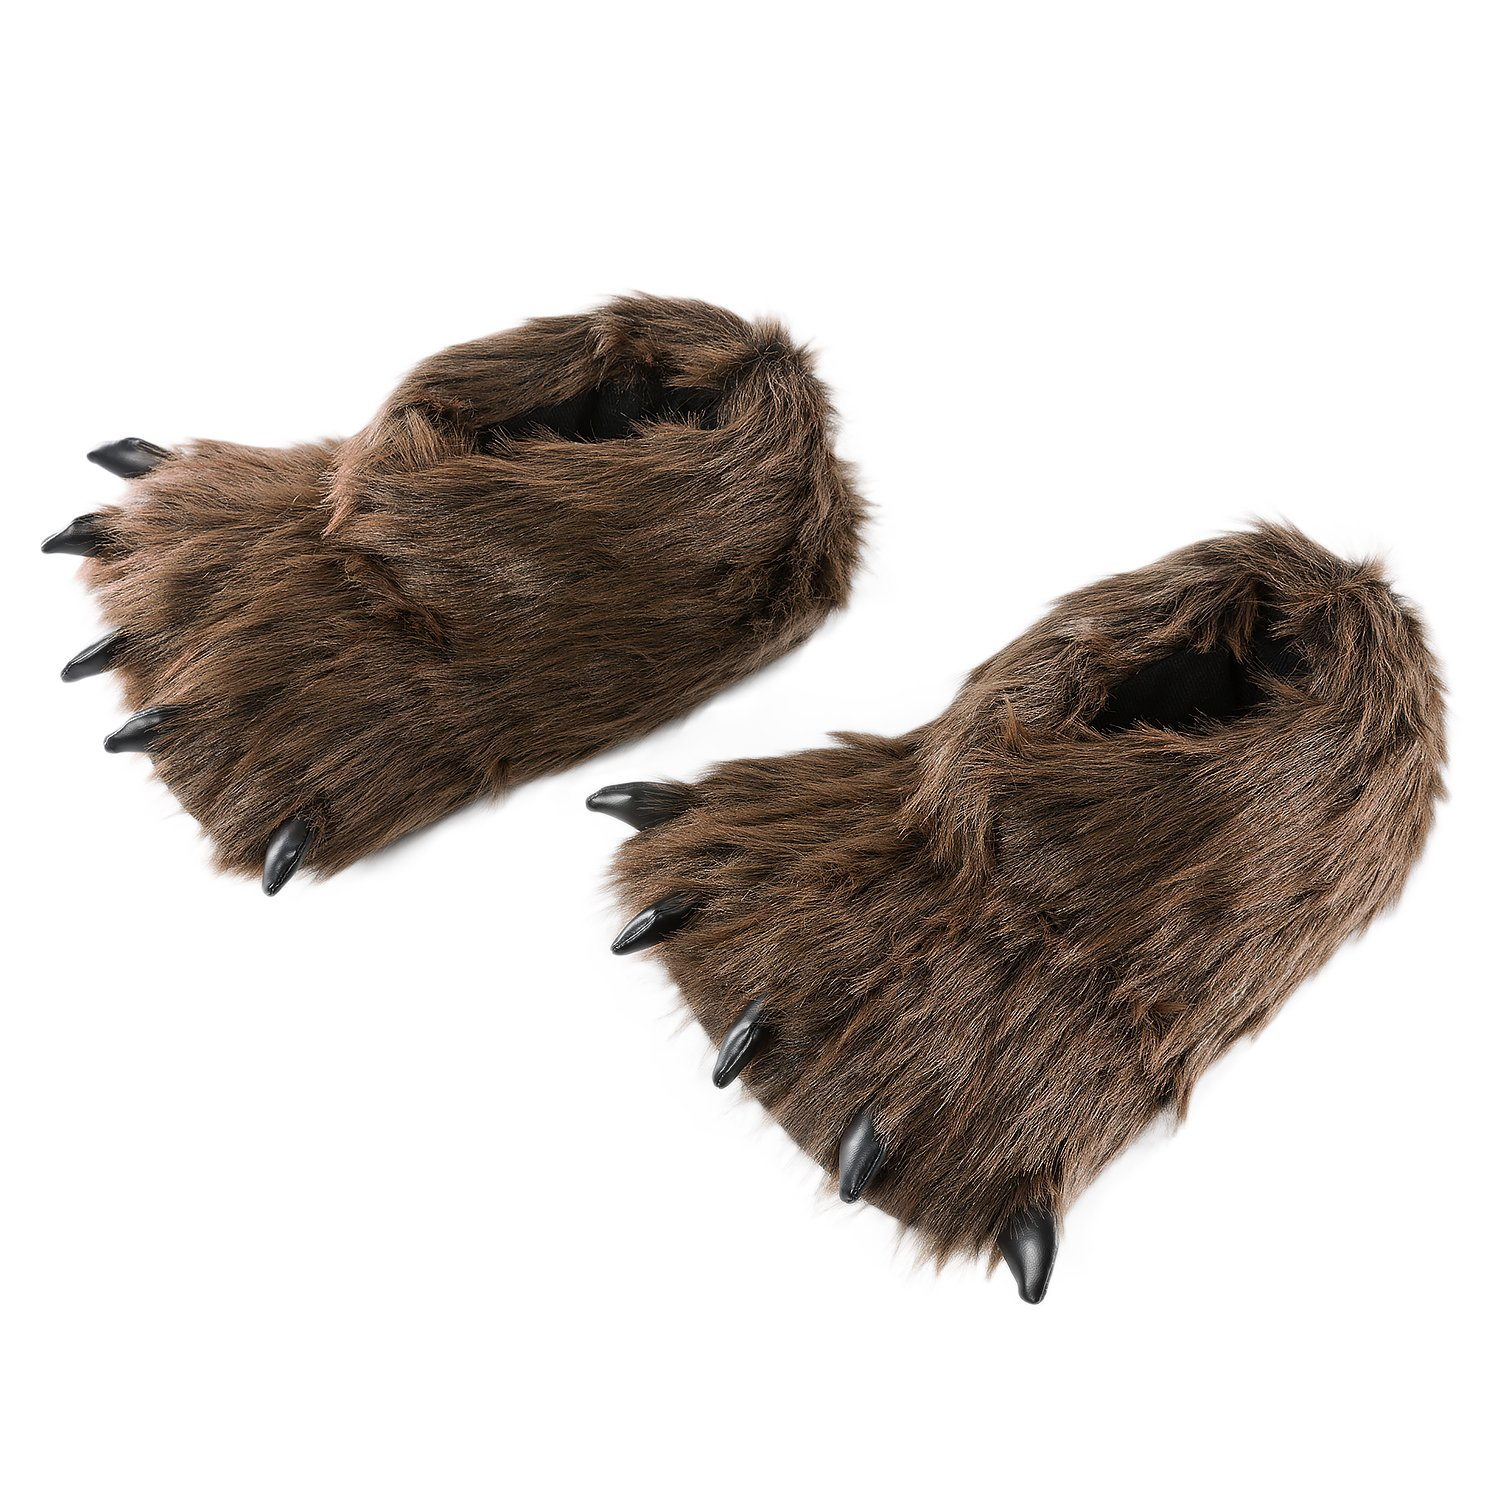 Claws Shoes Plush Bear Paw Slippers Brown by HollyHOME